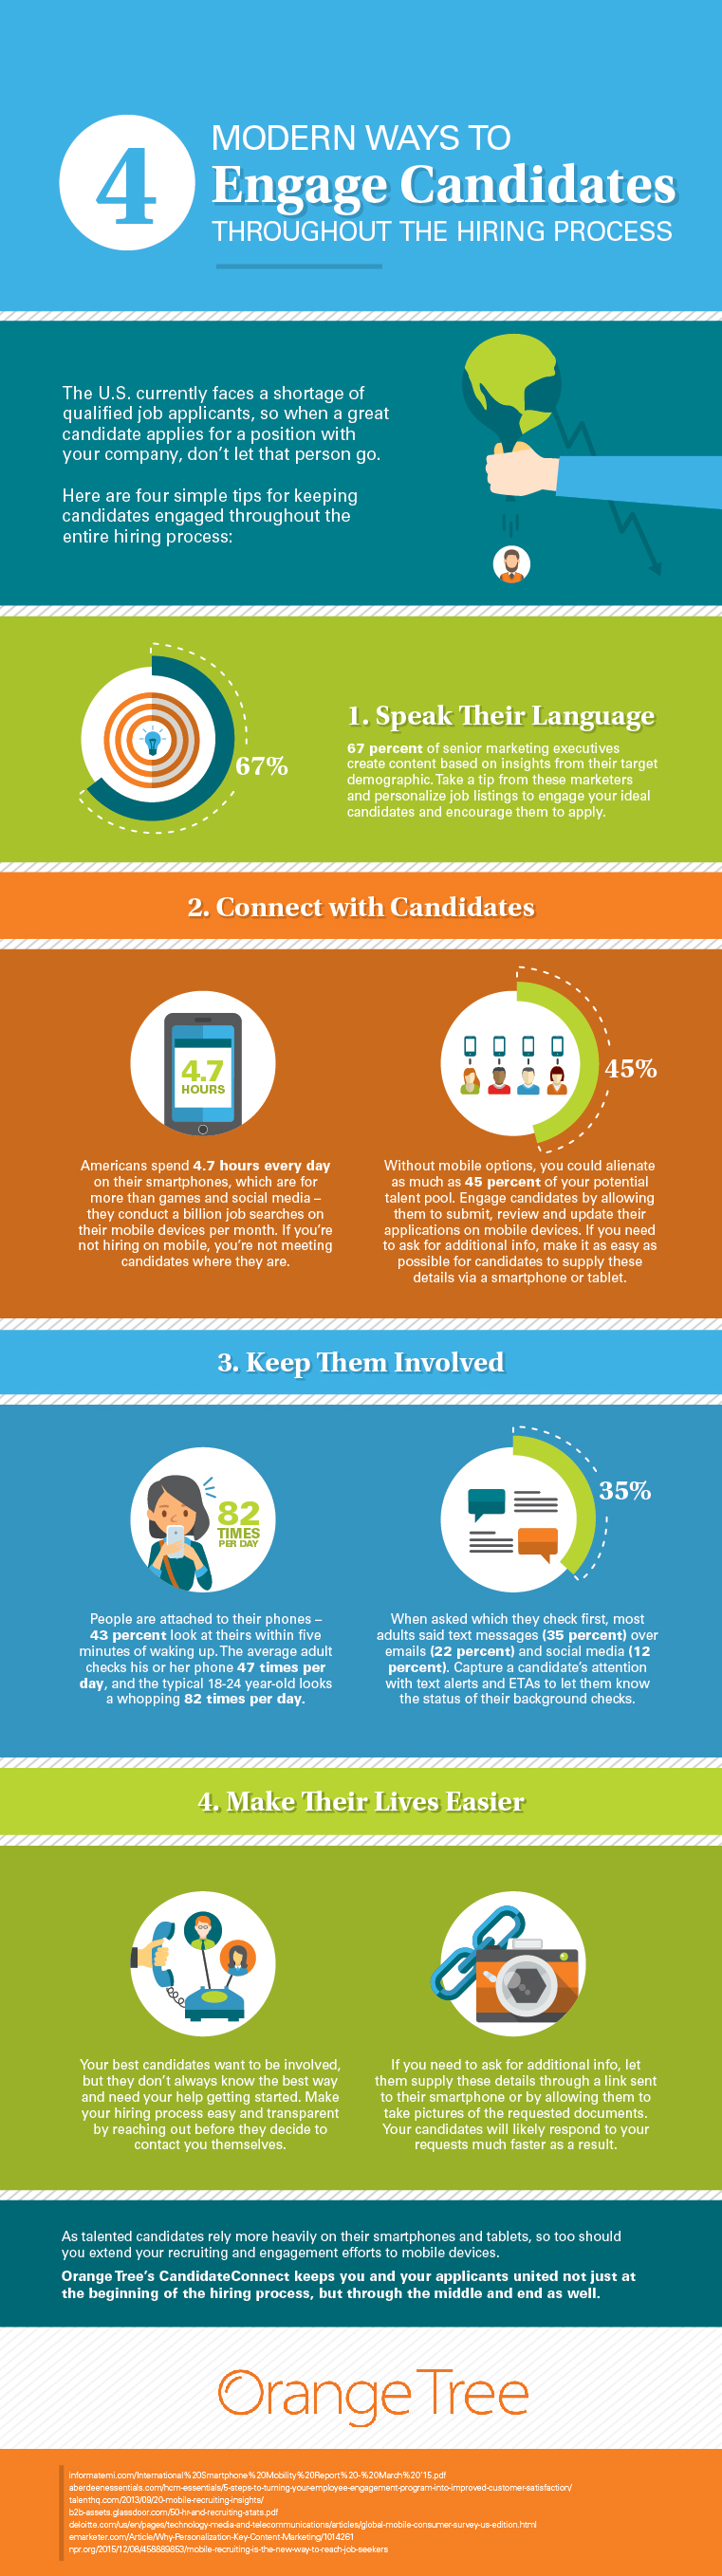 An infographic listing the four tips for better candidate engagement.